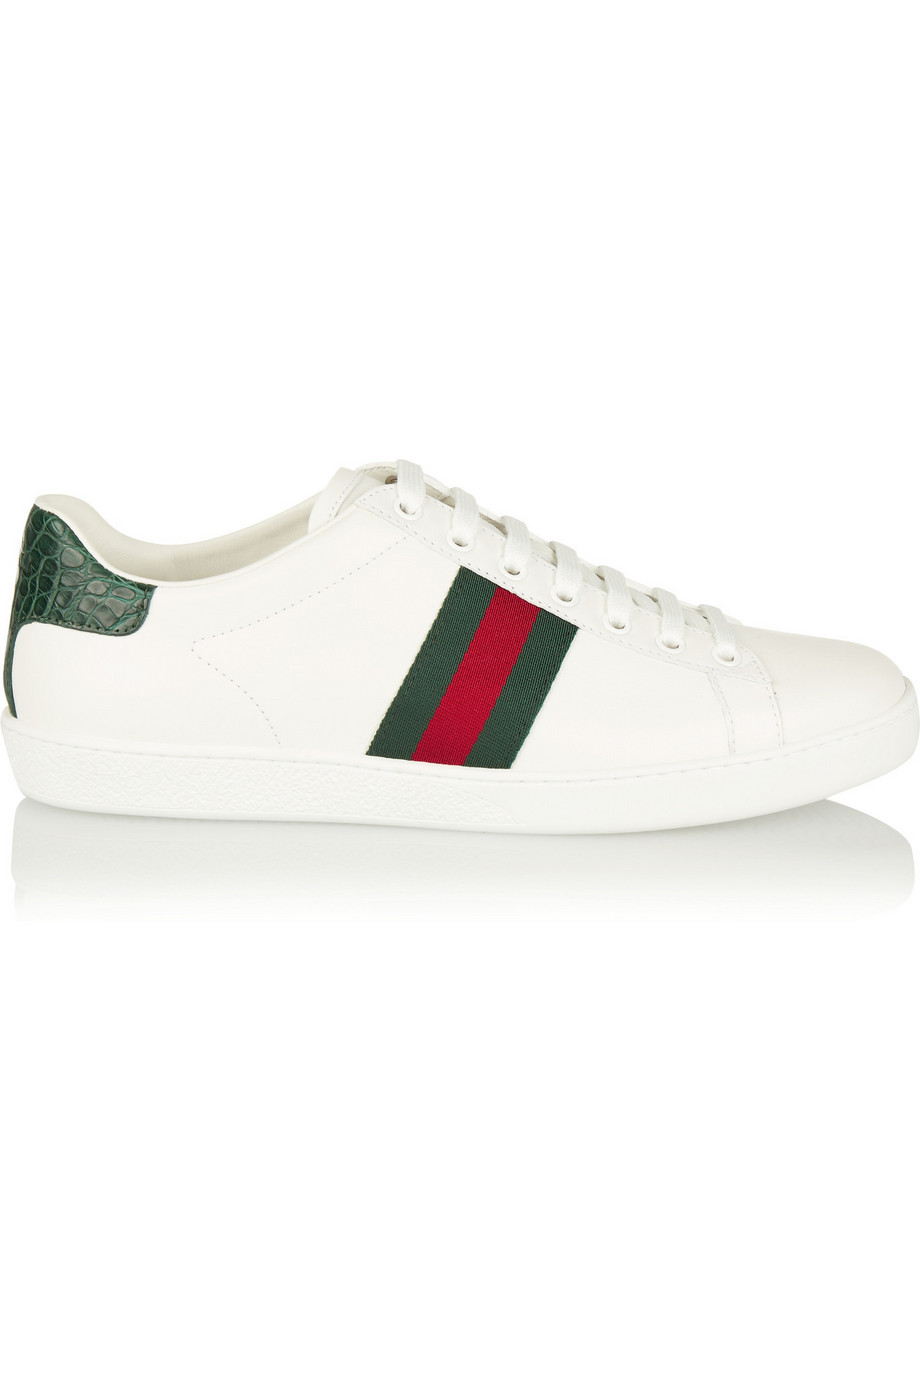 Gucci New Ace Crocodile-Trimmed Leather Sneakers, White, Women's US Size: 8.5, Size: 39